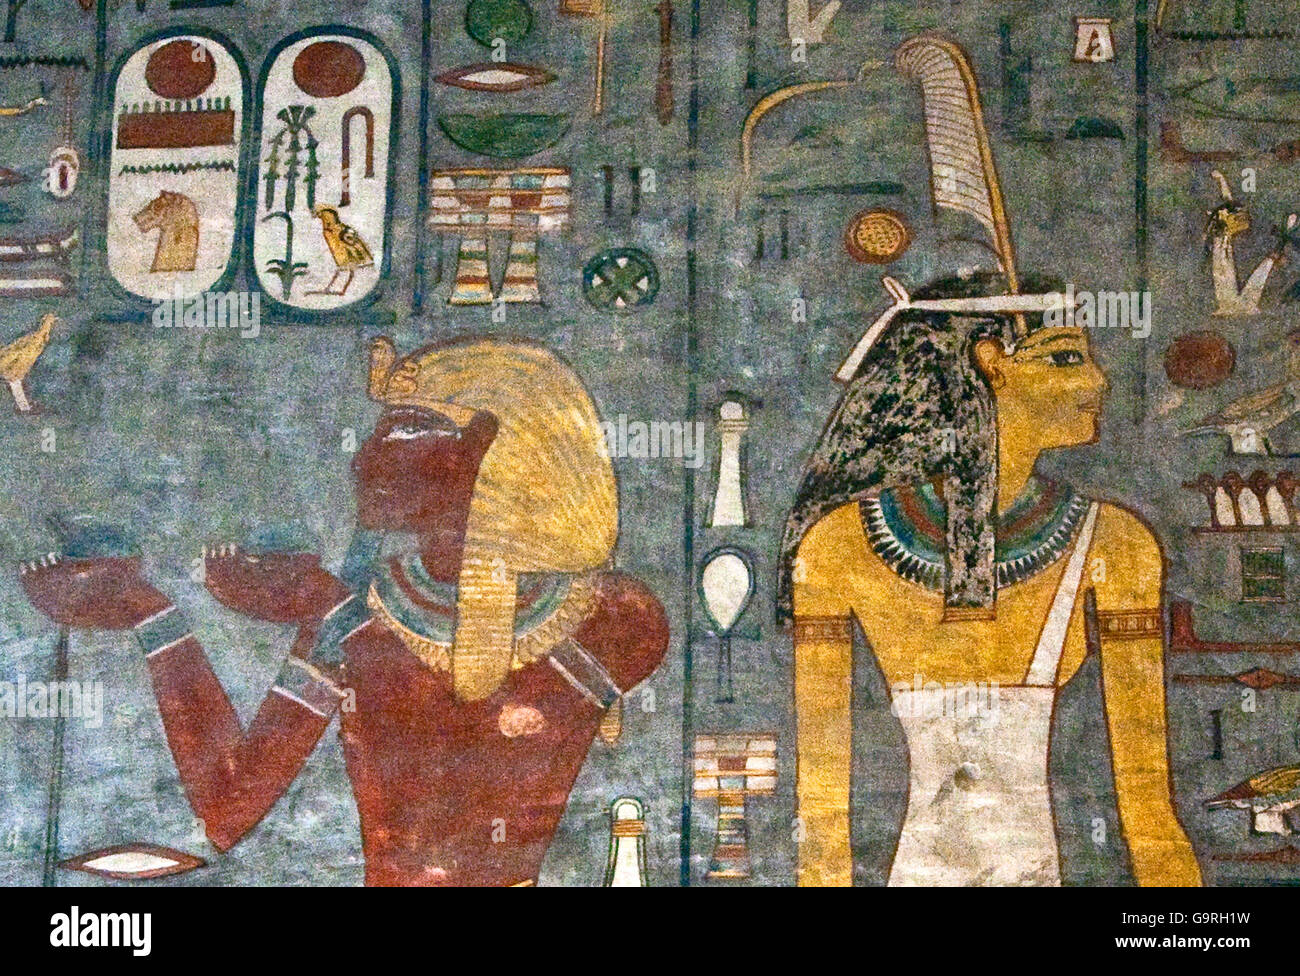 Mural painting pharao pharaohs queen tomb of ramses i for Egypt mural painting